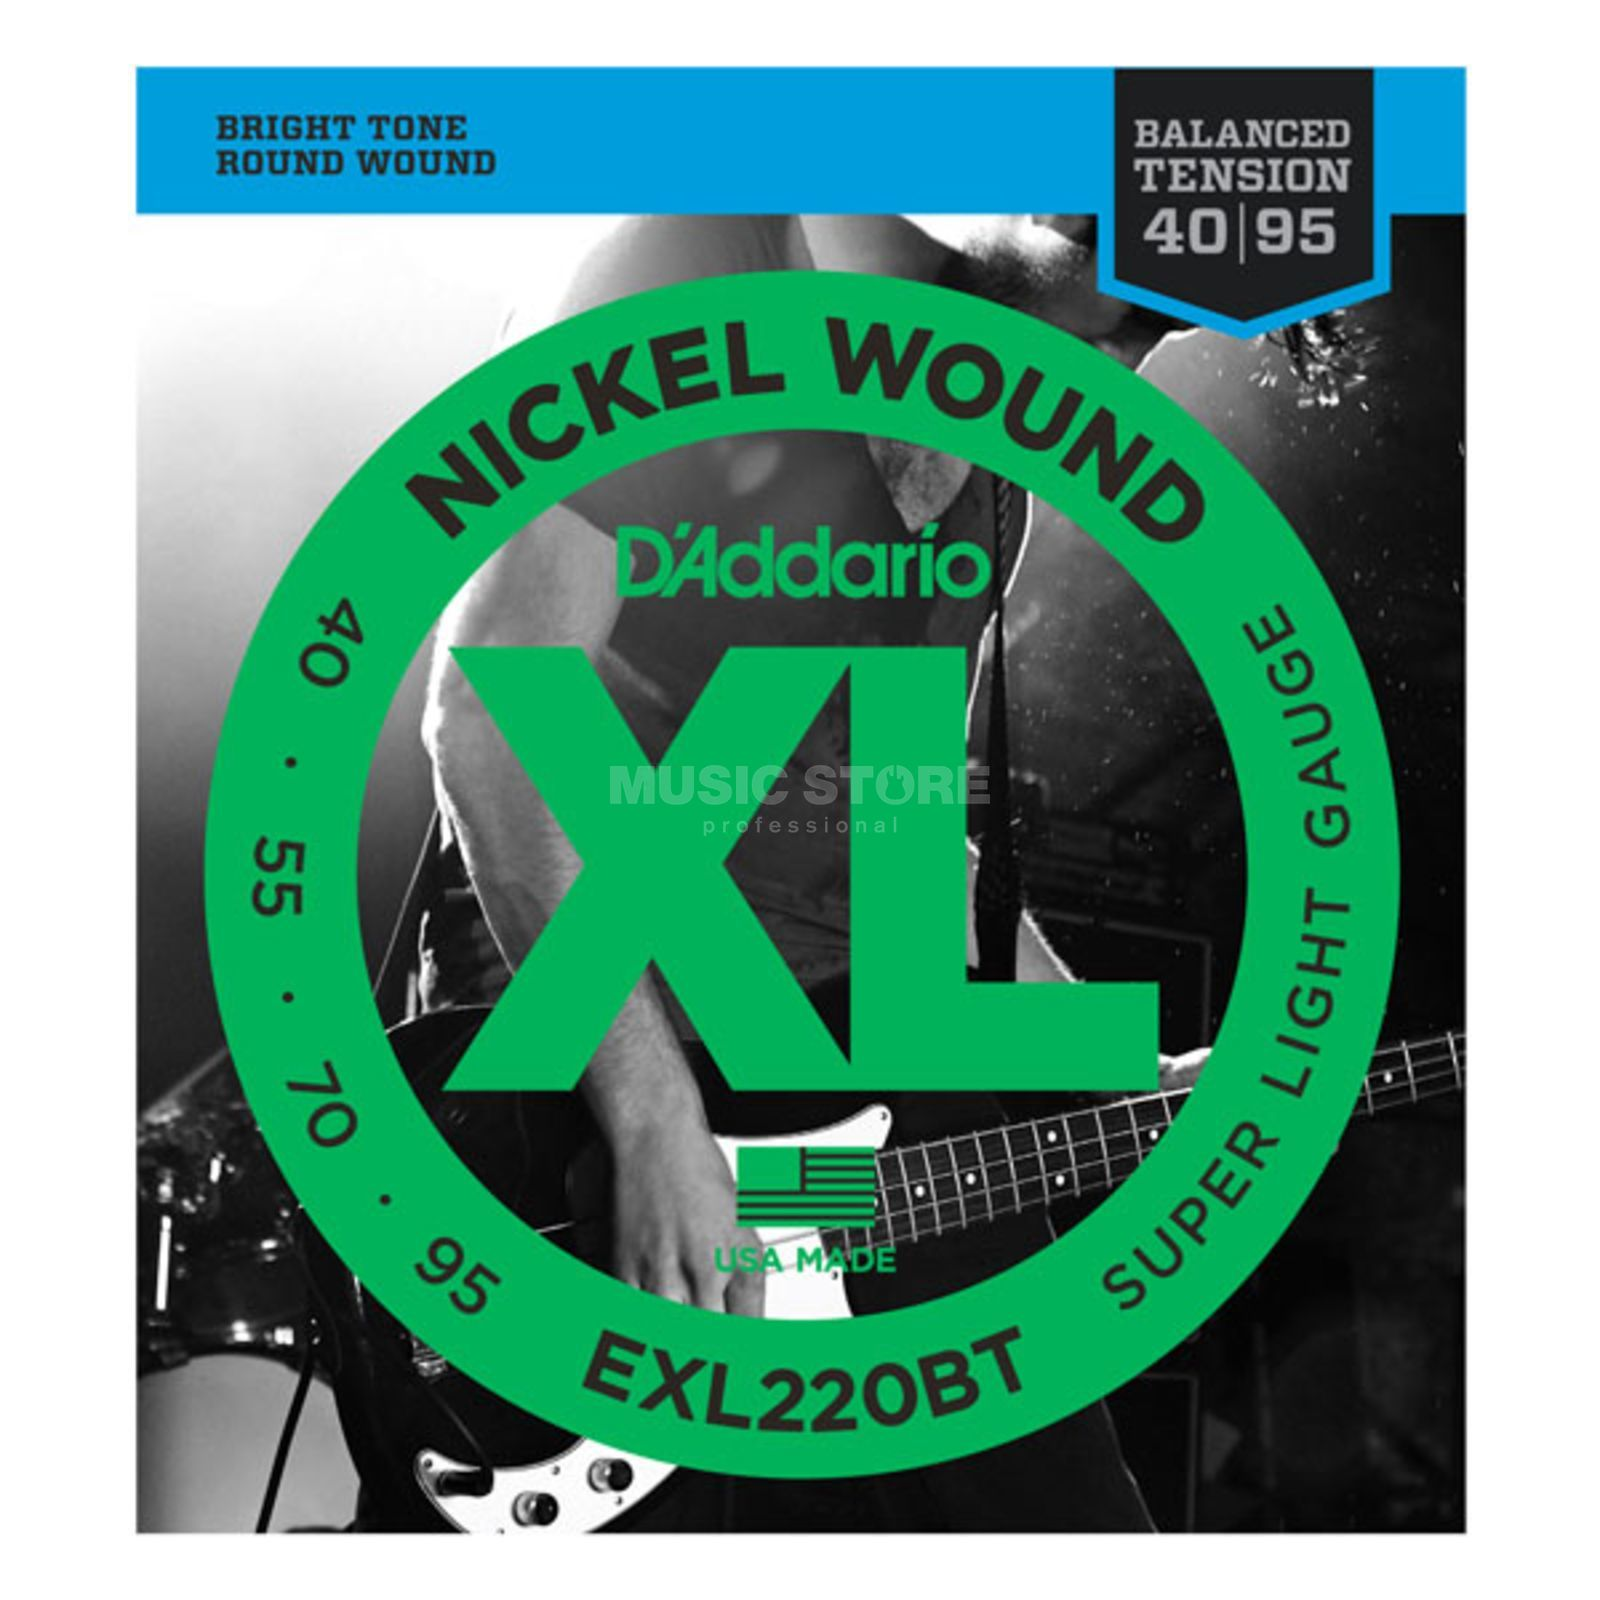 D'Addario Bass Strings XL Balanced 40-95 40-55-70-95, EXL220BT Zdjęcie produktu